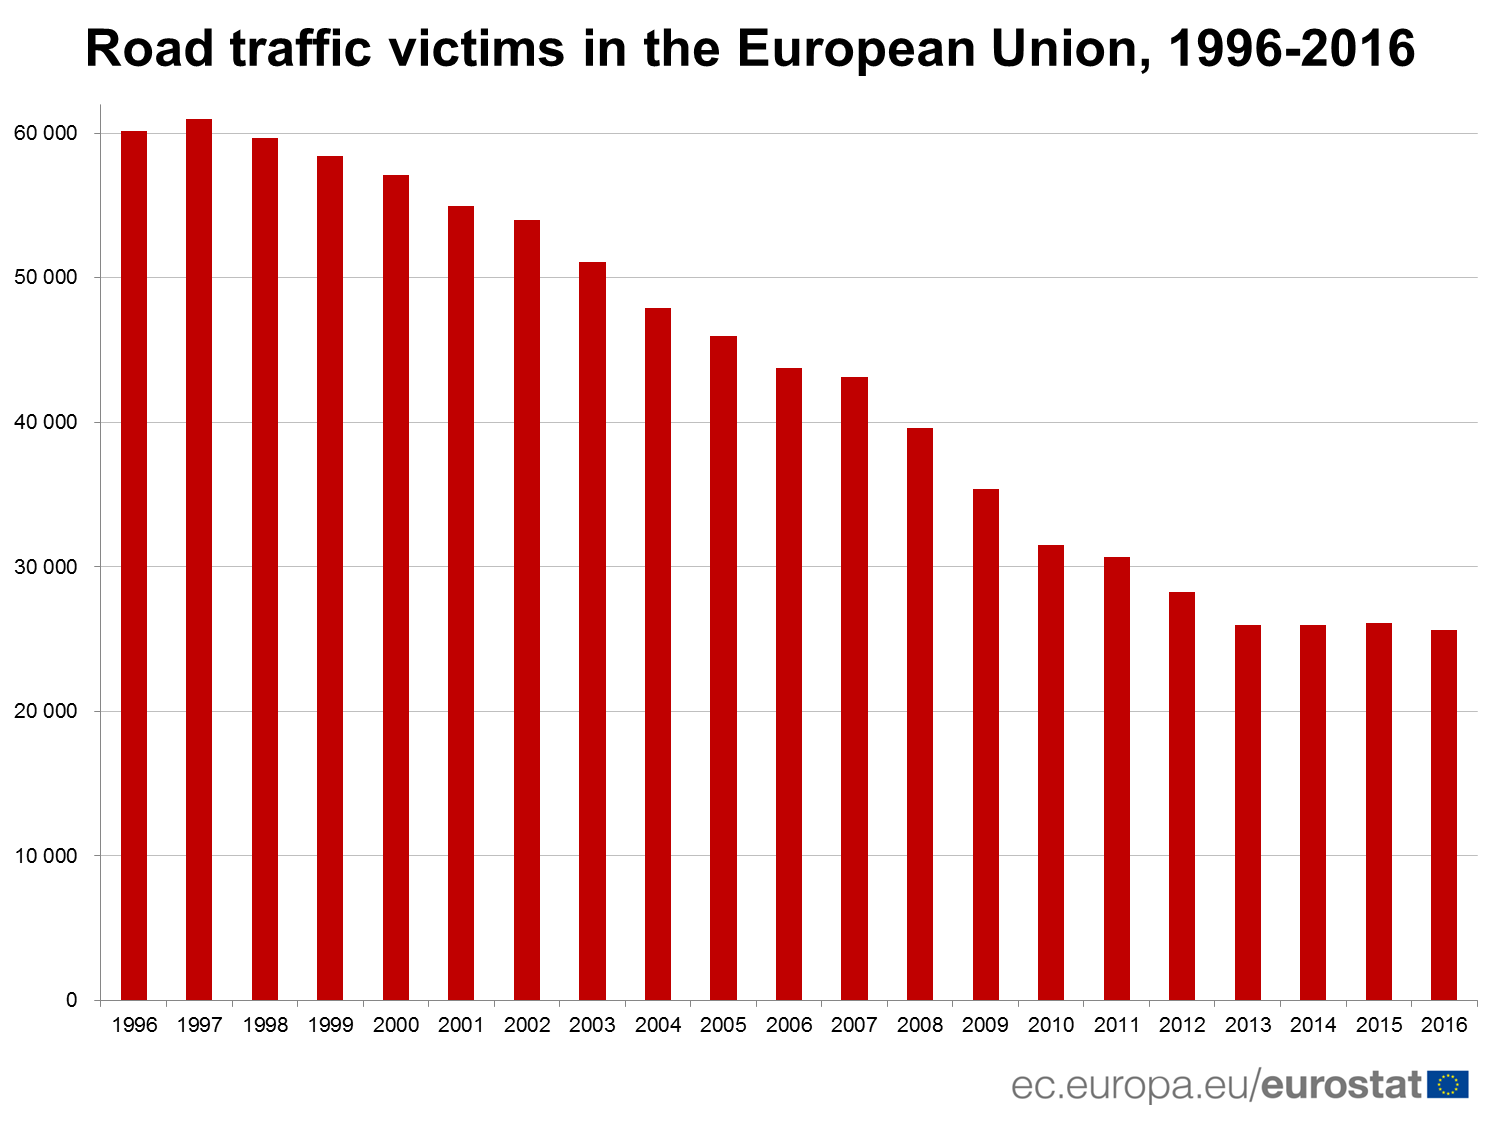 Road traffic victims in the EU, 1996-2016